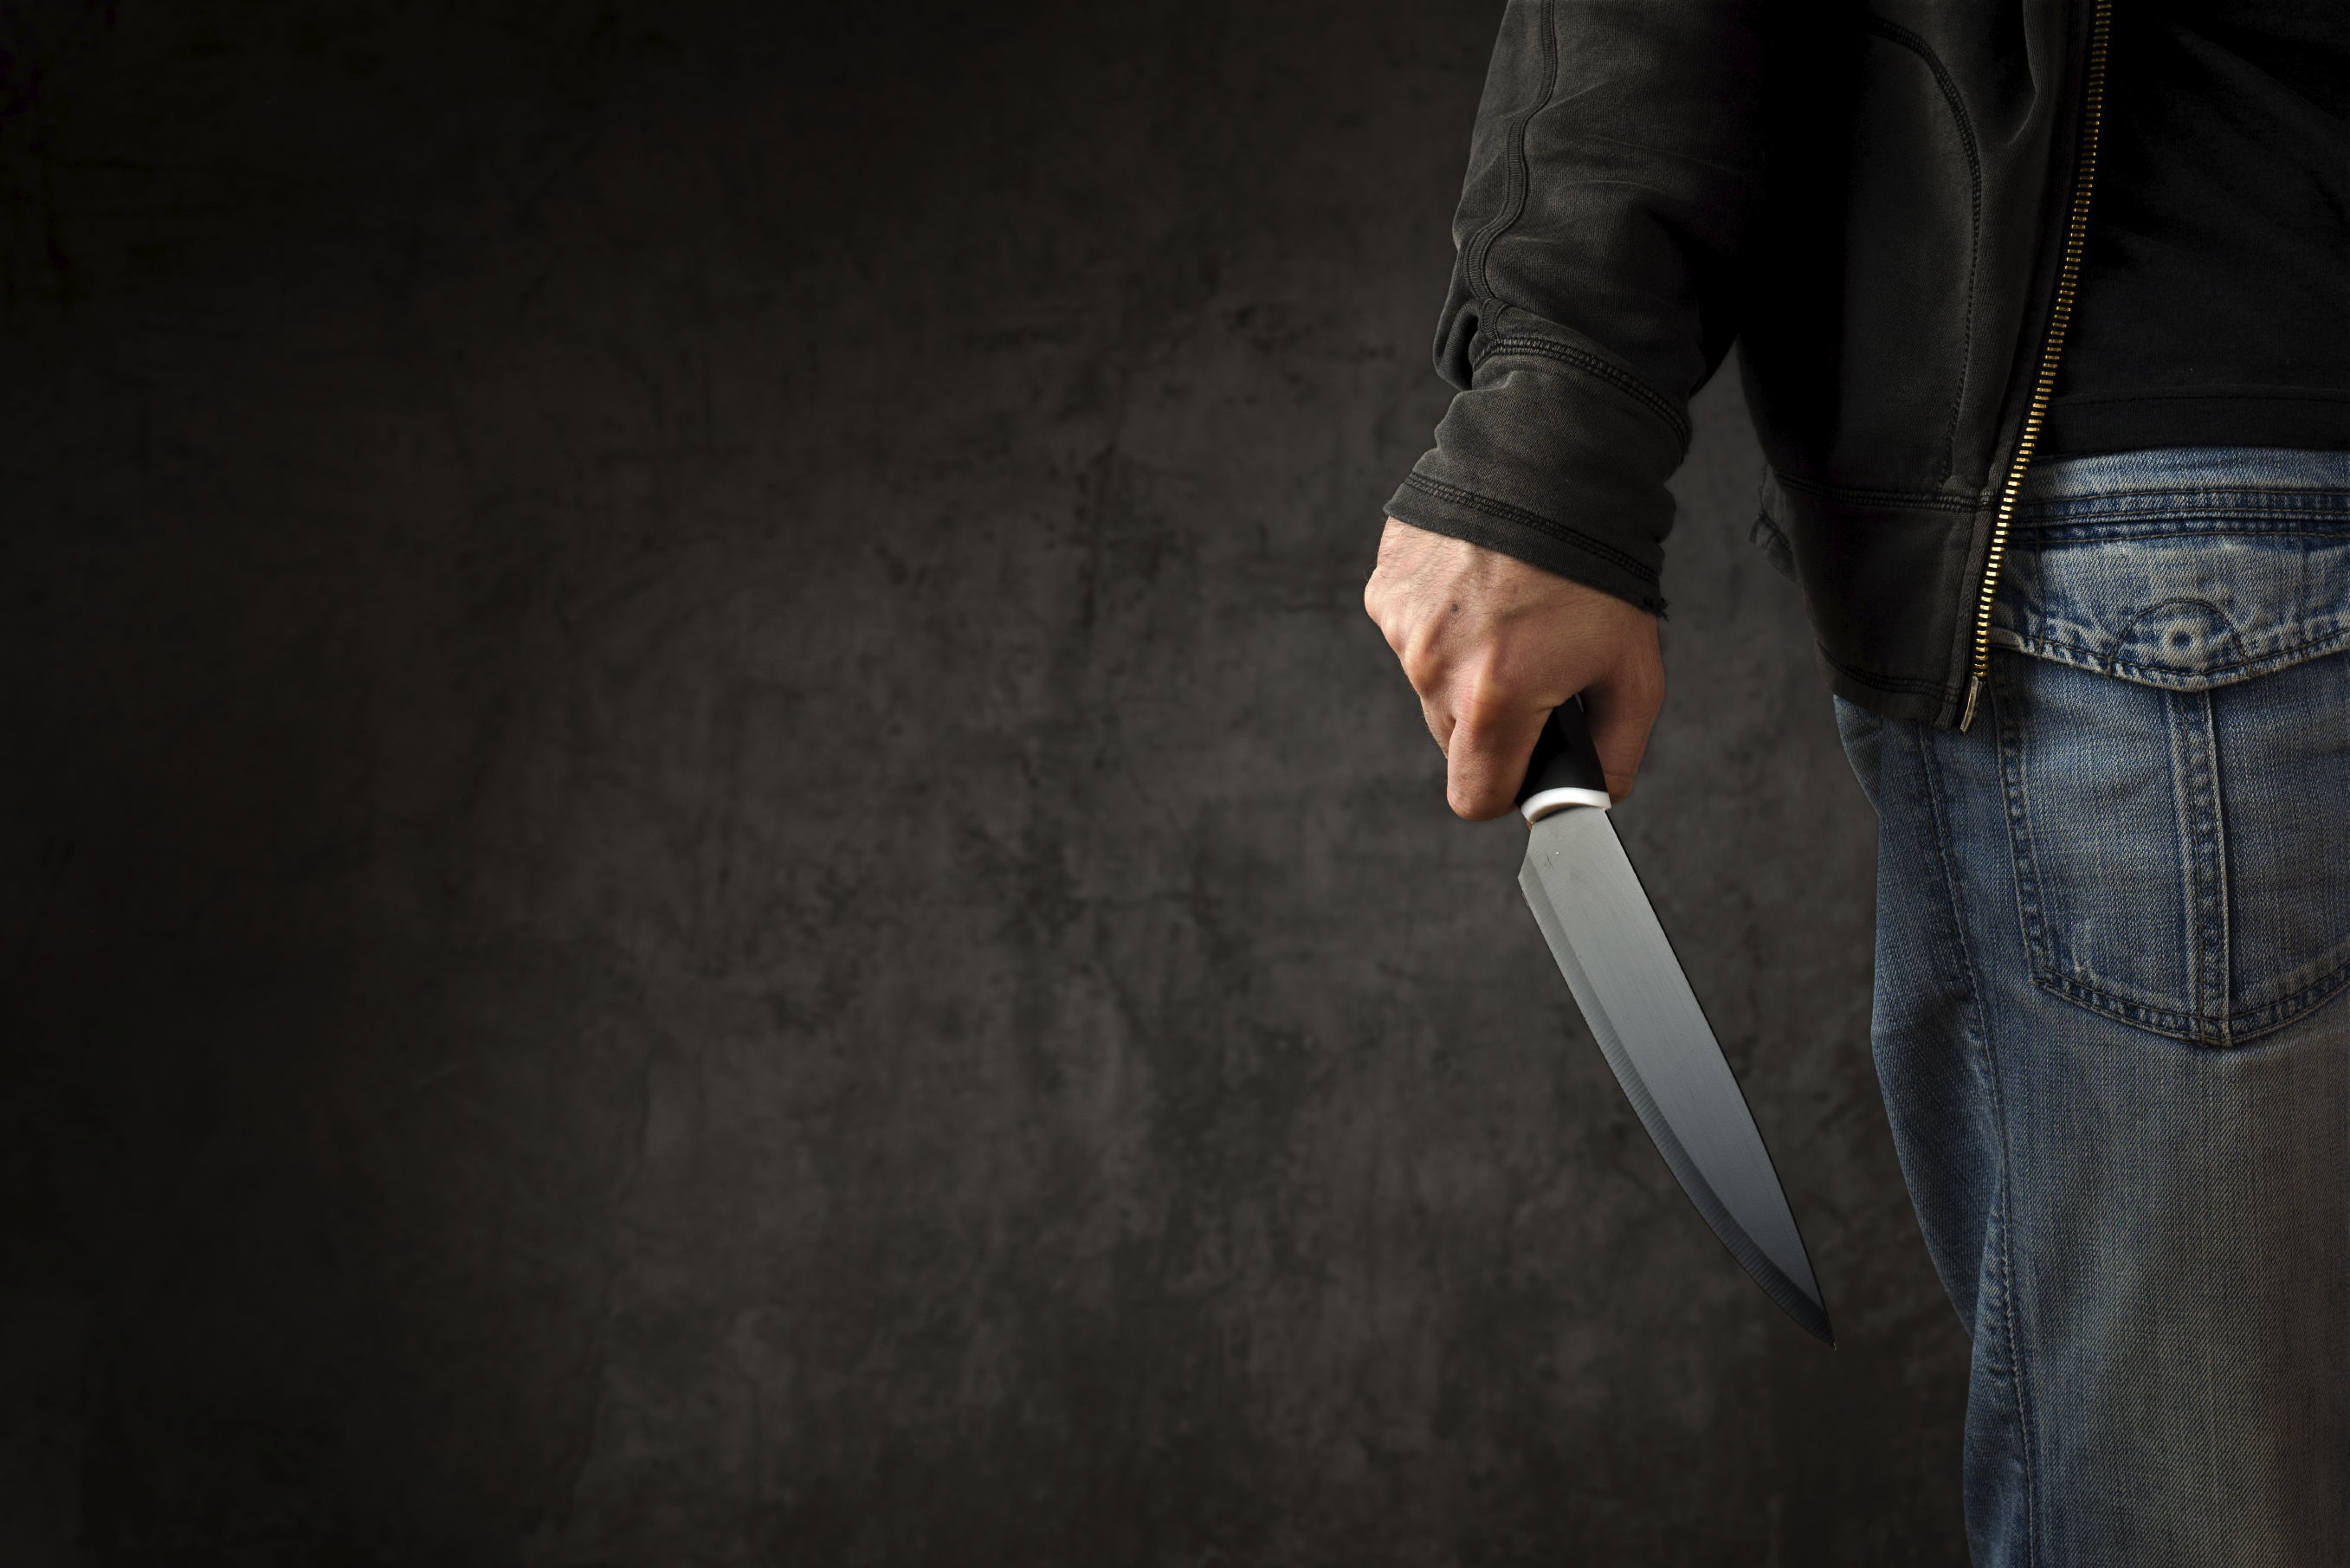 TEEN TAKES KNIFE TO SCHOOL OVER FEARS OF BULLIES